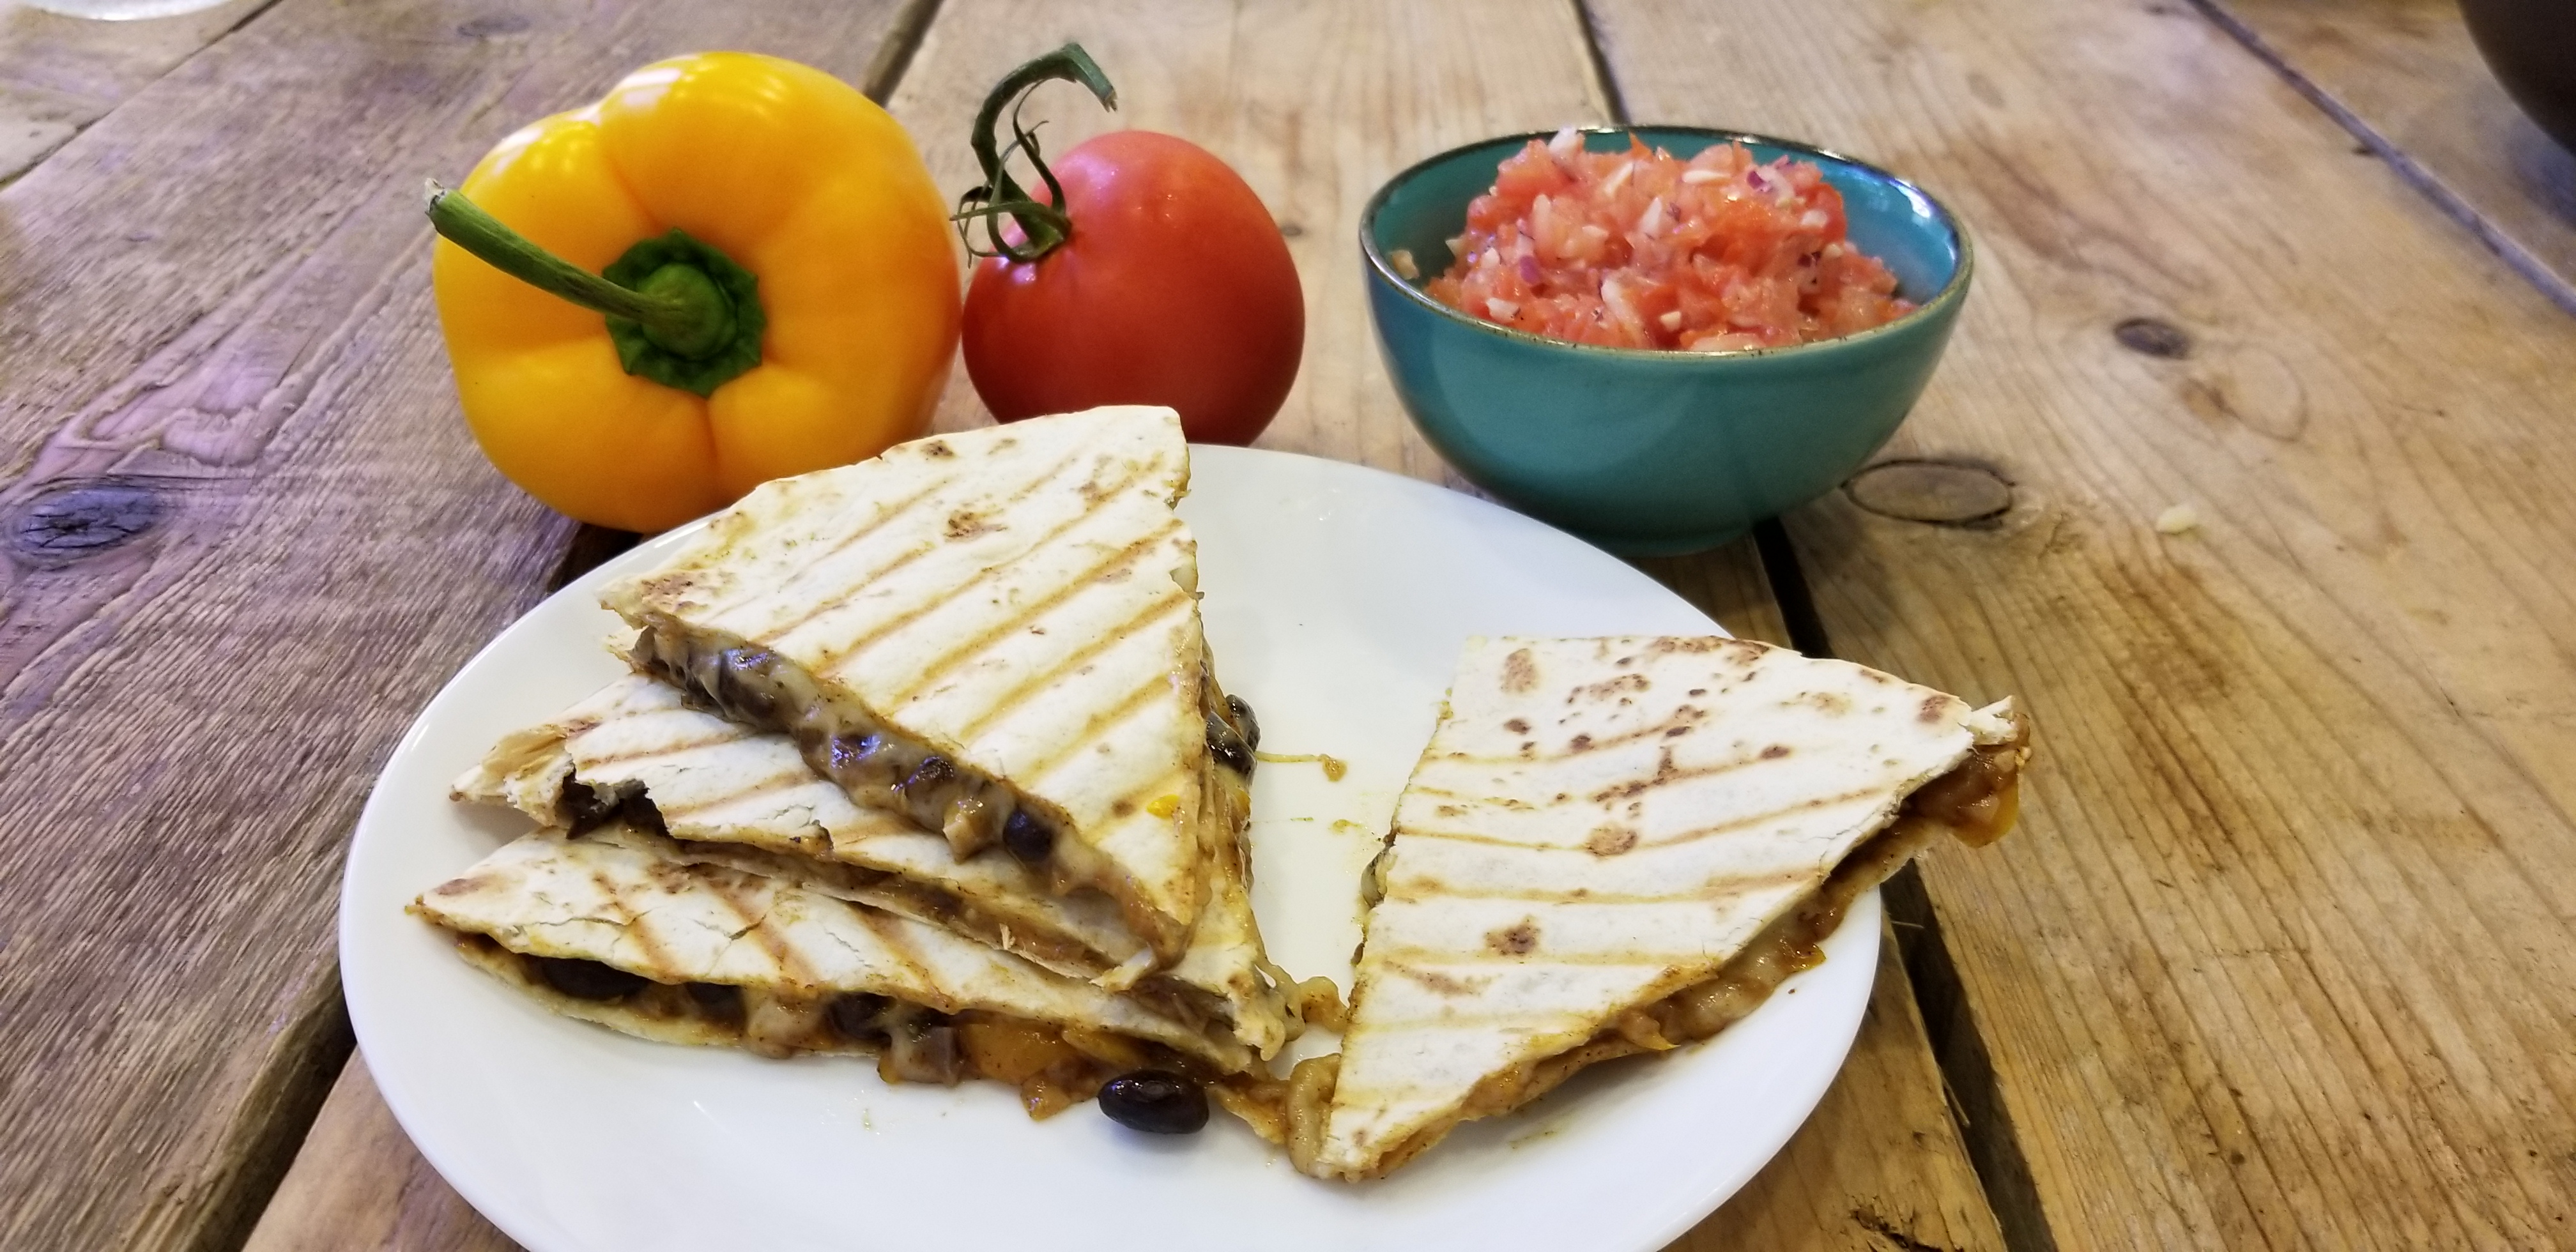 Recept vegetarische quesadilla